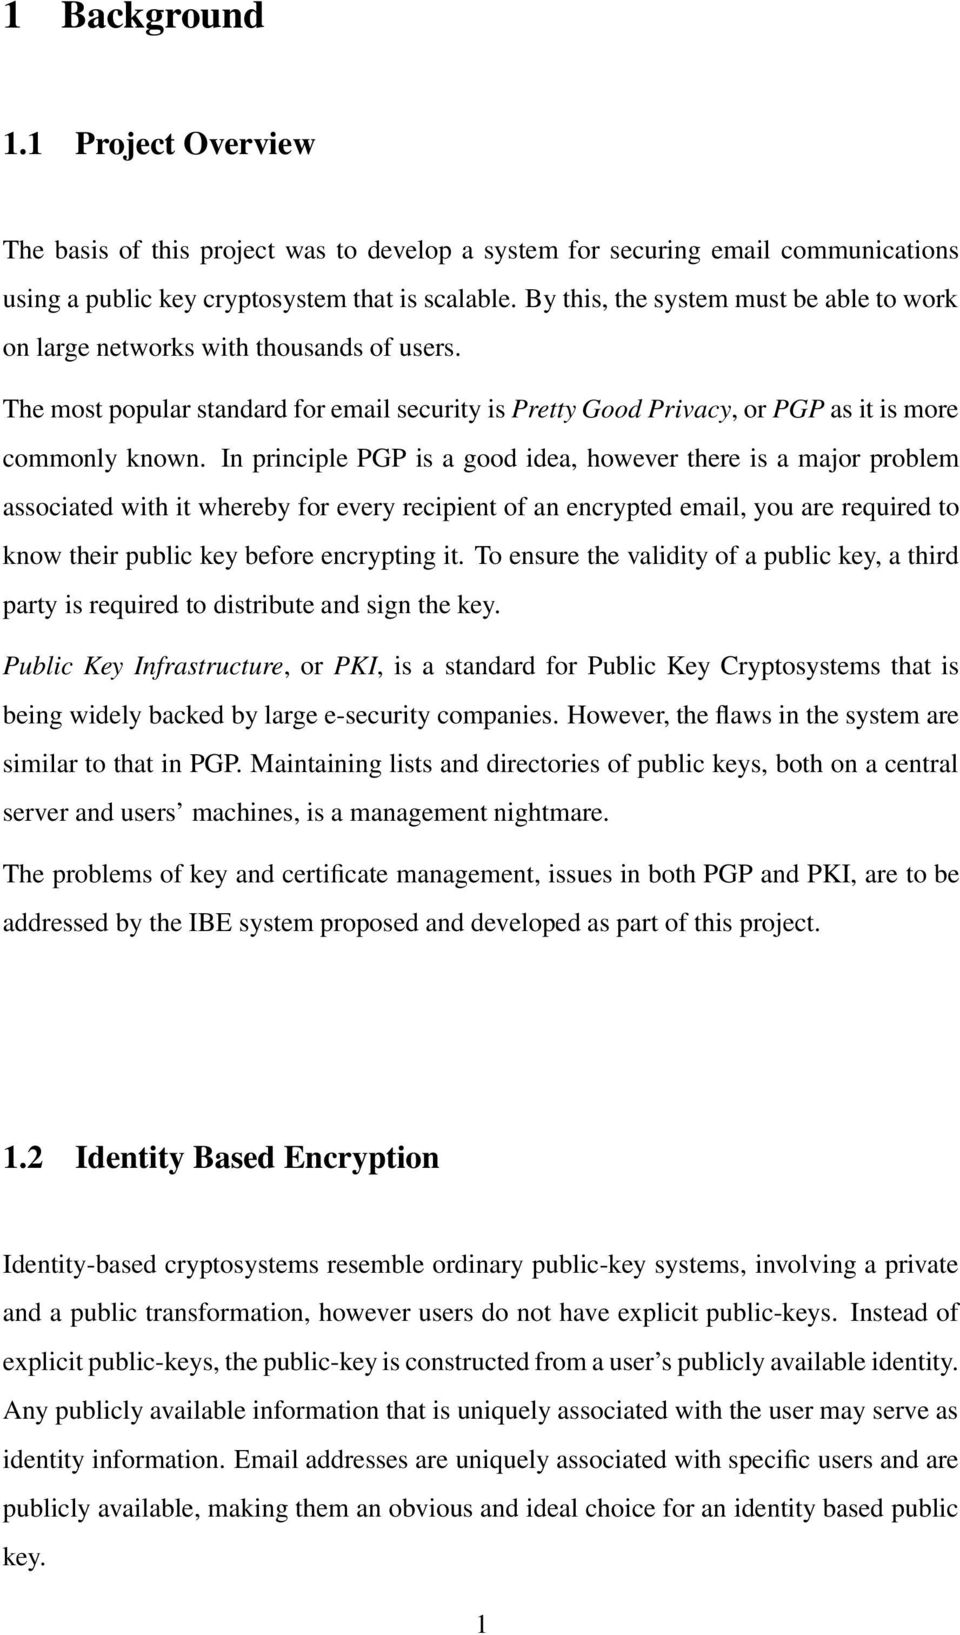 In principle PGP is a good idea, however there is a major problem associated with it whereby for every recipient of an encrypted email, you are required to know their public key before encrypting it.